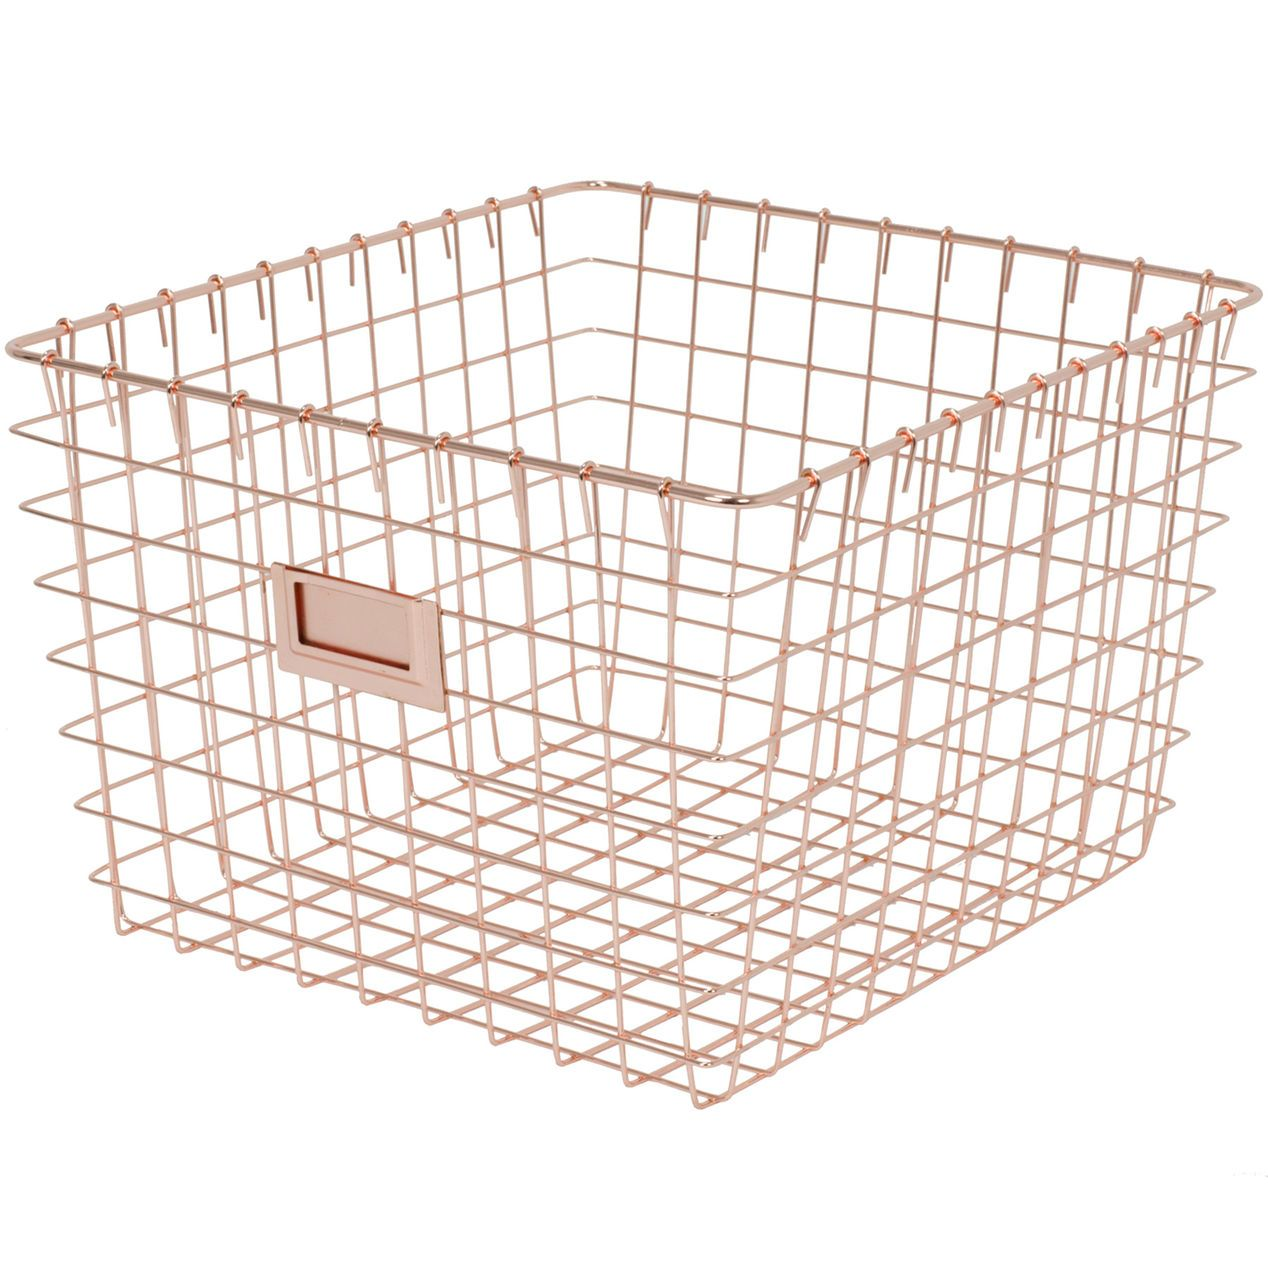 Gold Metal Basket 13 X 11 X 8 In Metal Baskets Gold Wire Basket Basket